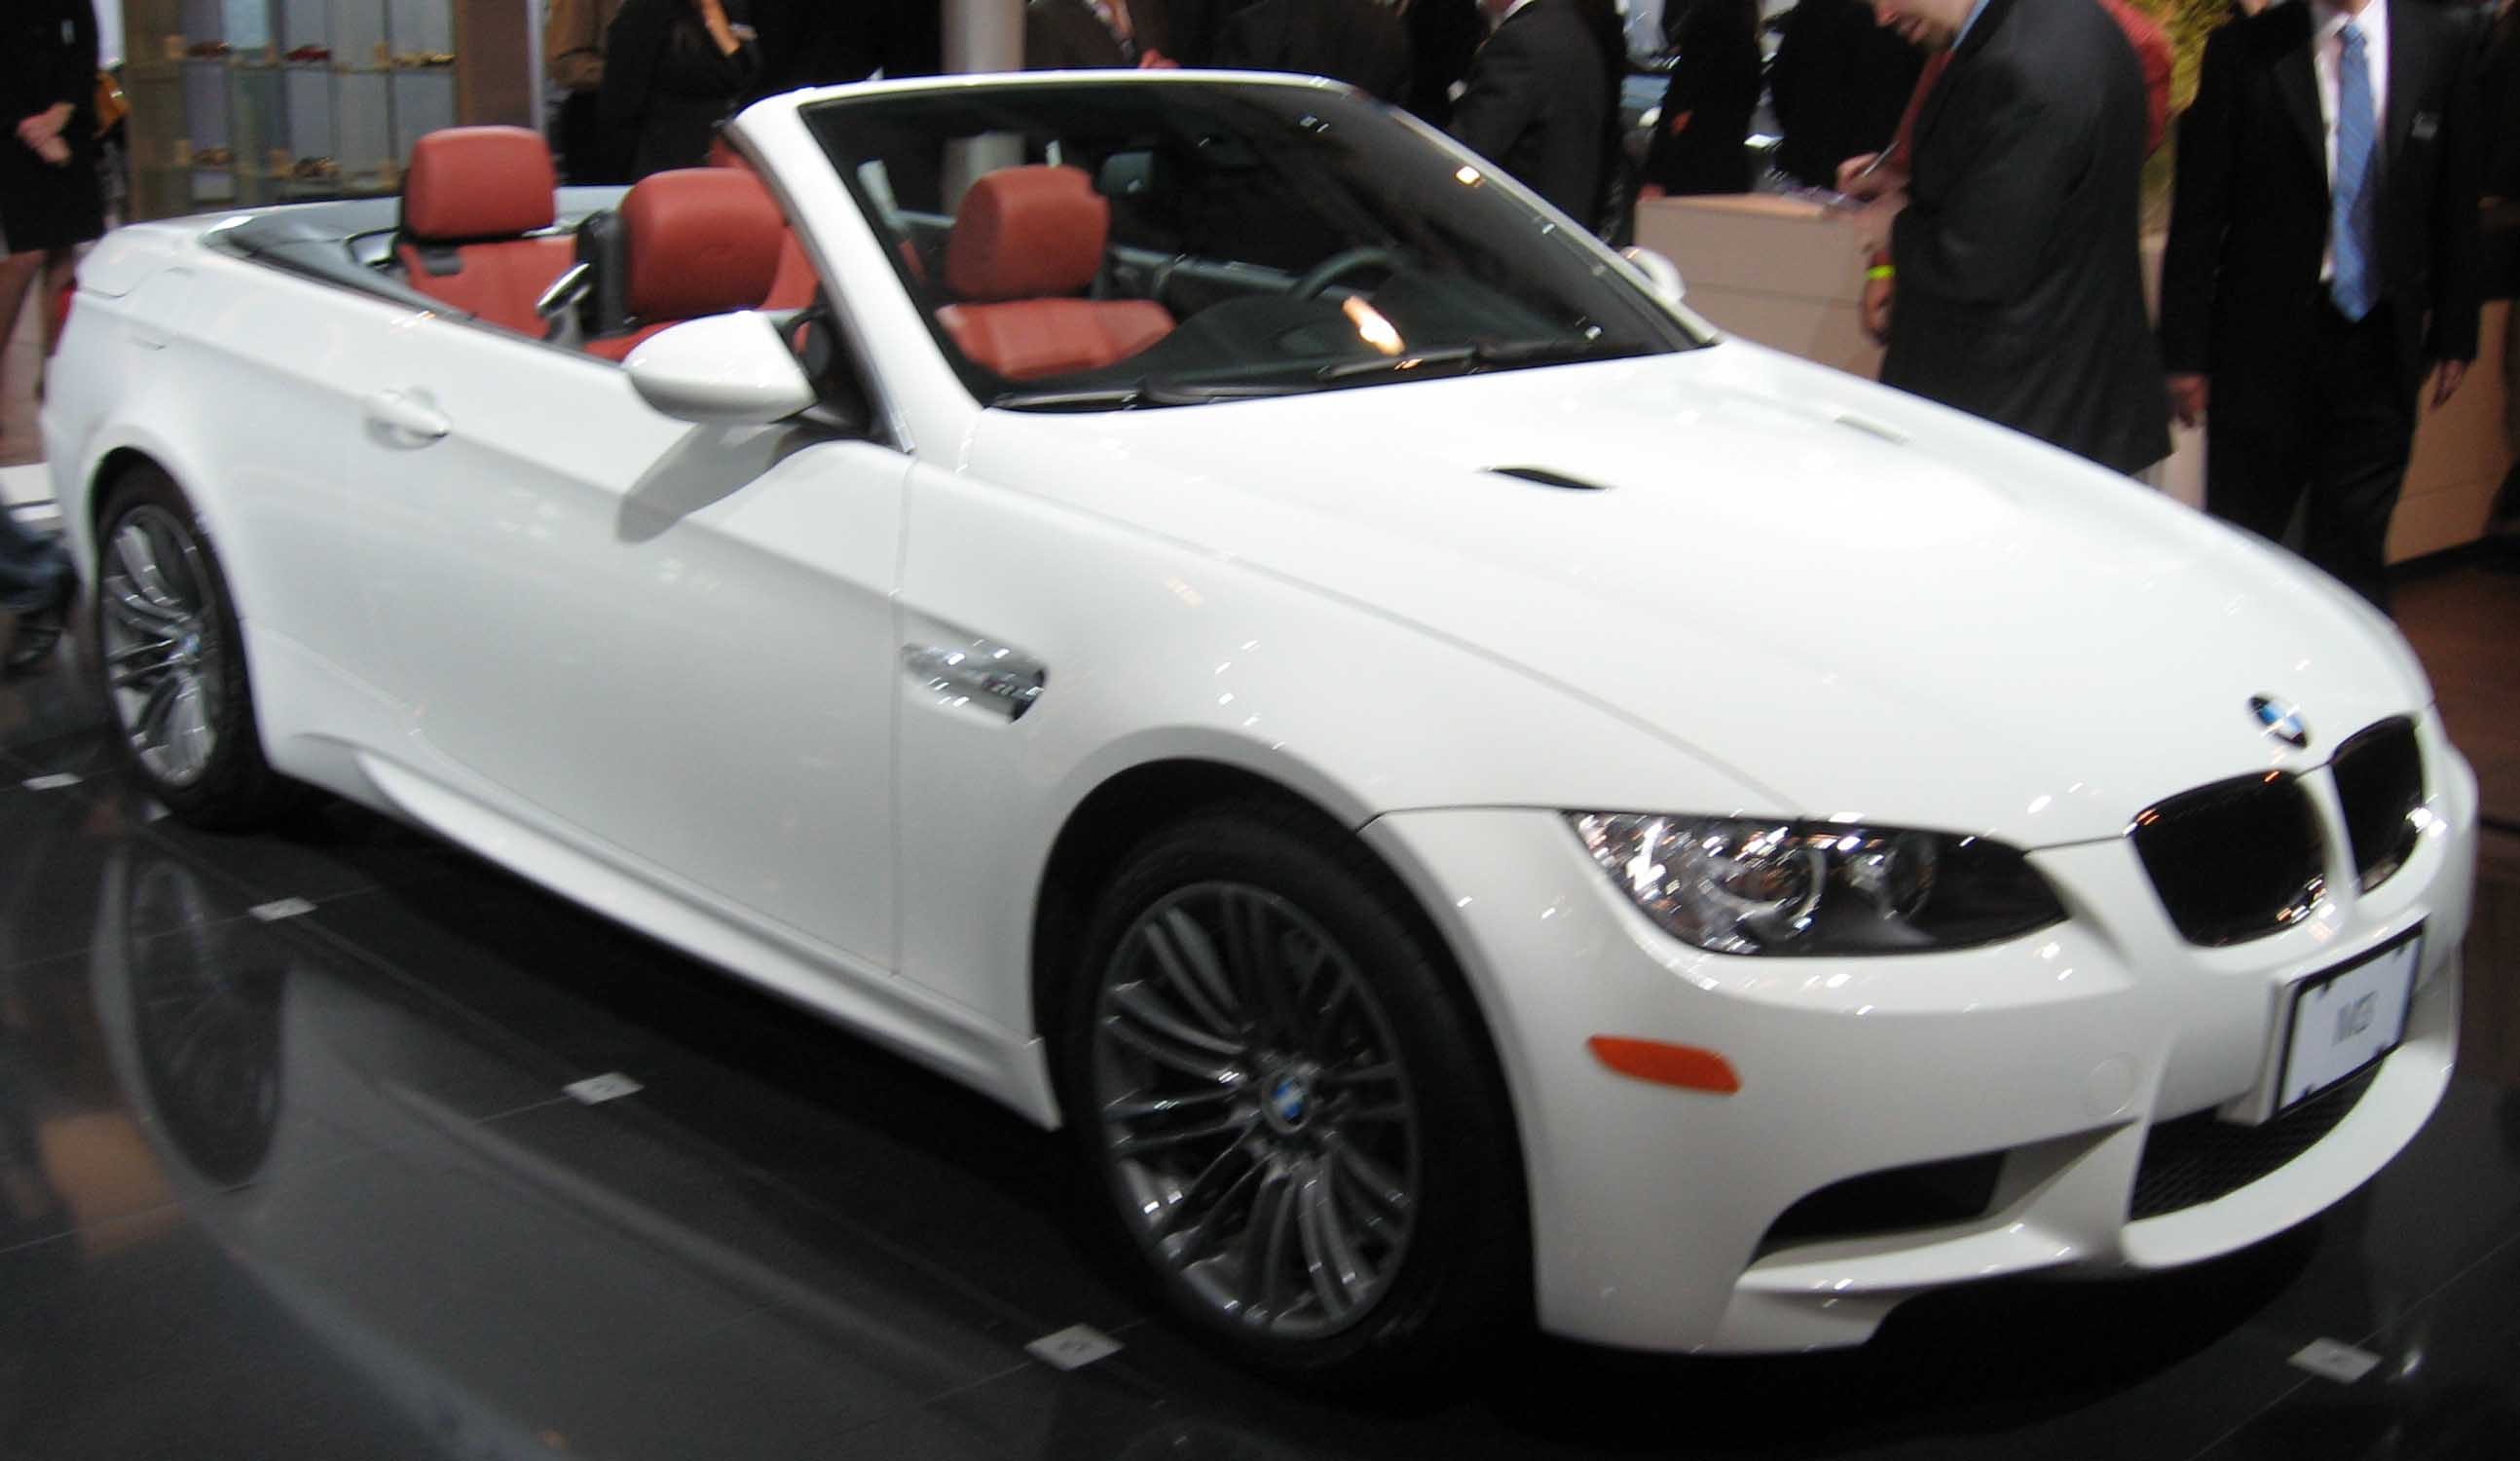 File2009 BMW M3 convertible NYjpg  Wikimedia Commons